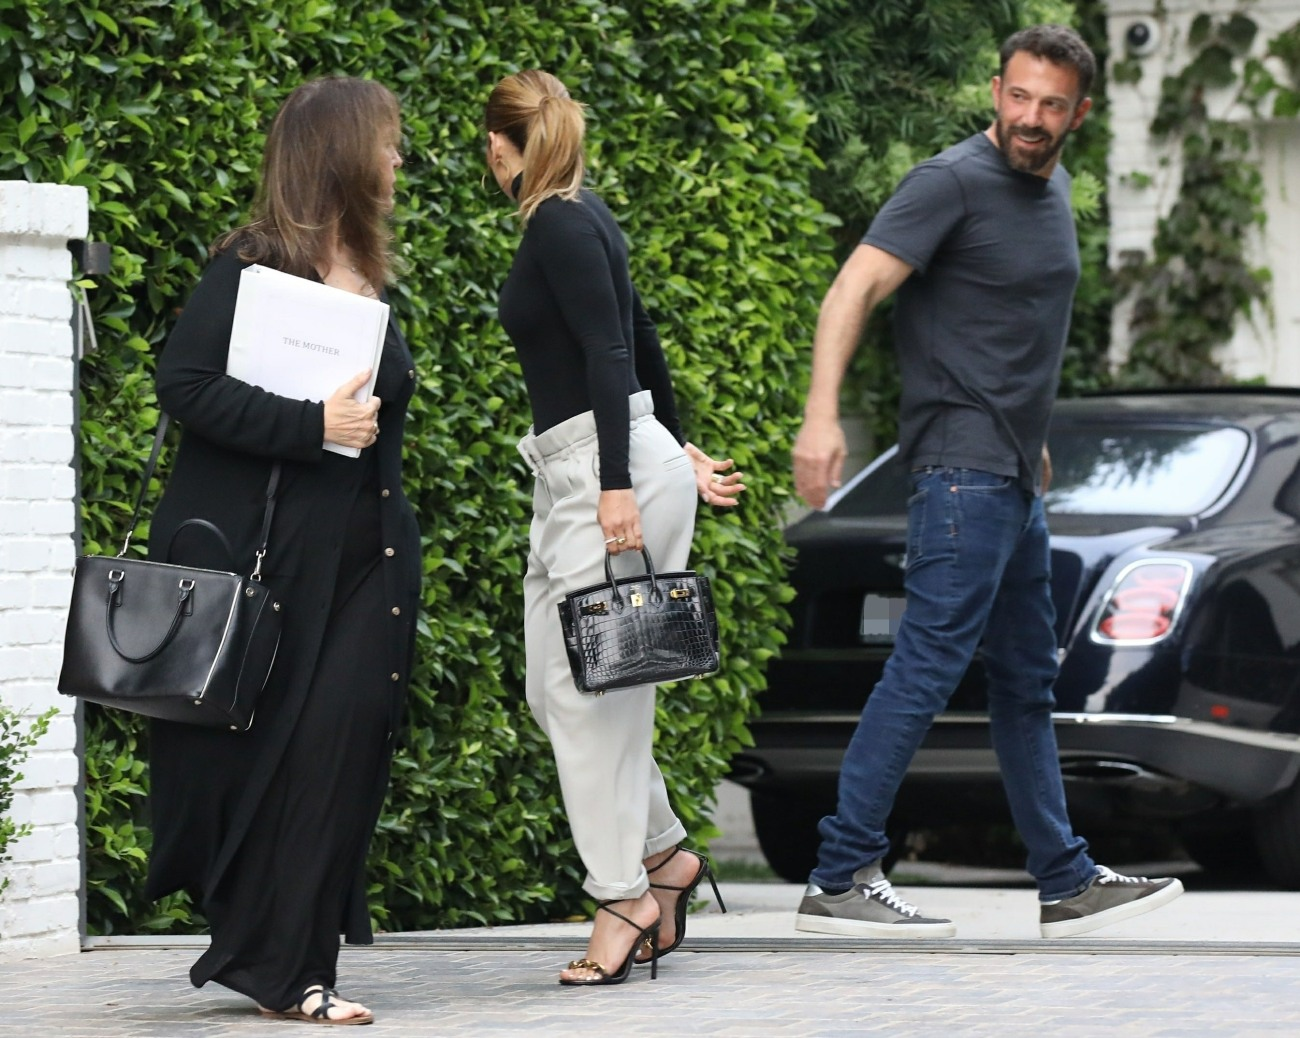 Ben Affleck and Jennifer Lopez share a Passionate Kiss Goodbye after spending the day together at his home